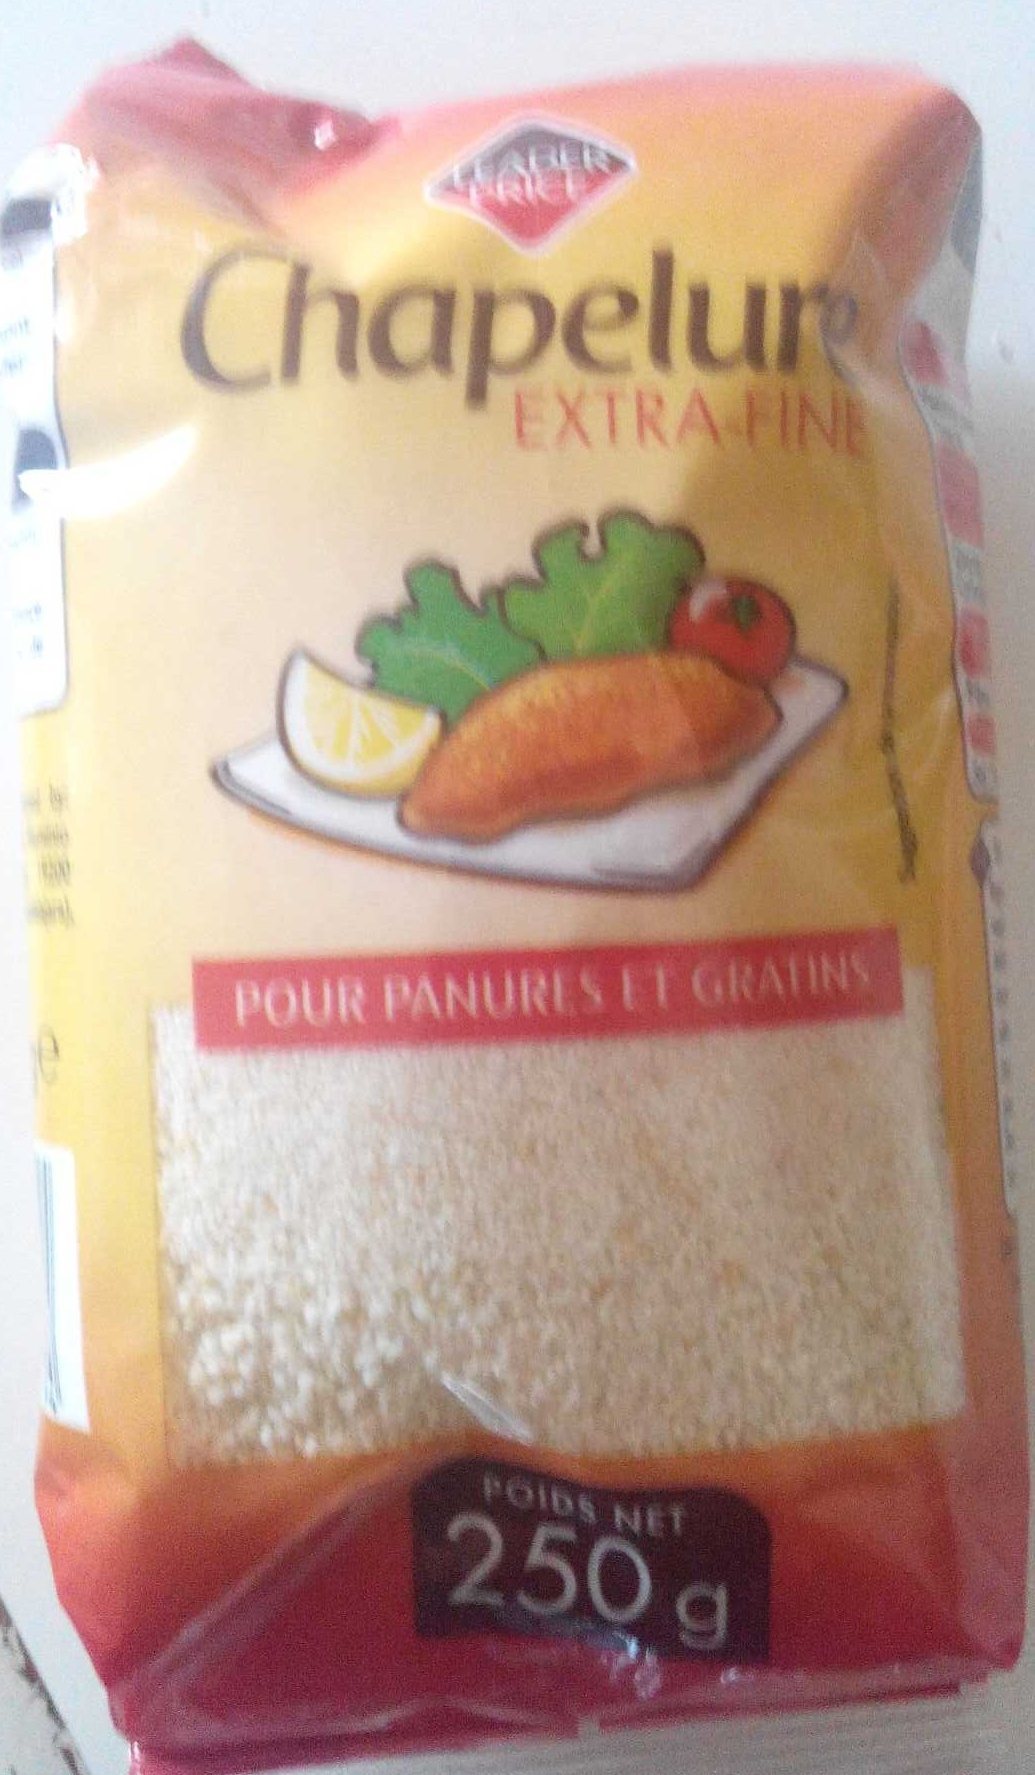 Chapelure extra-fine - Product